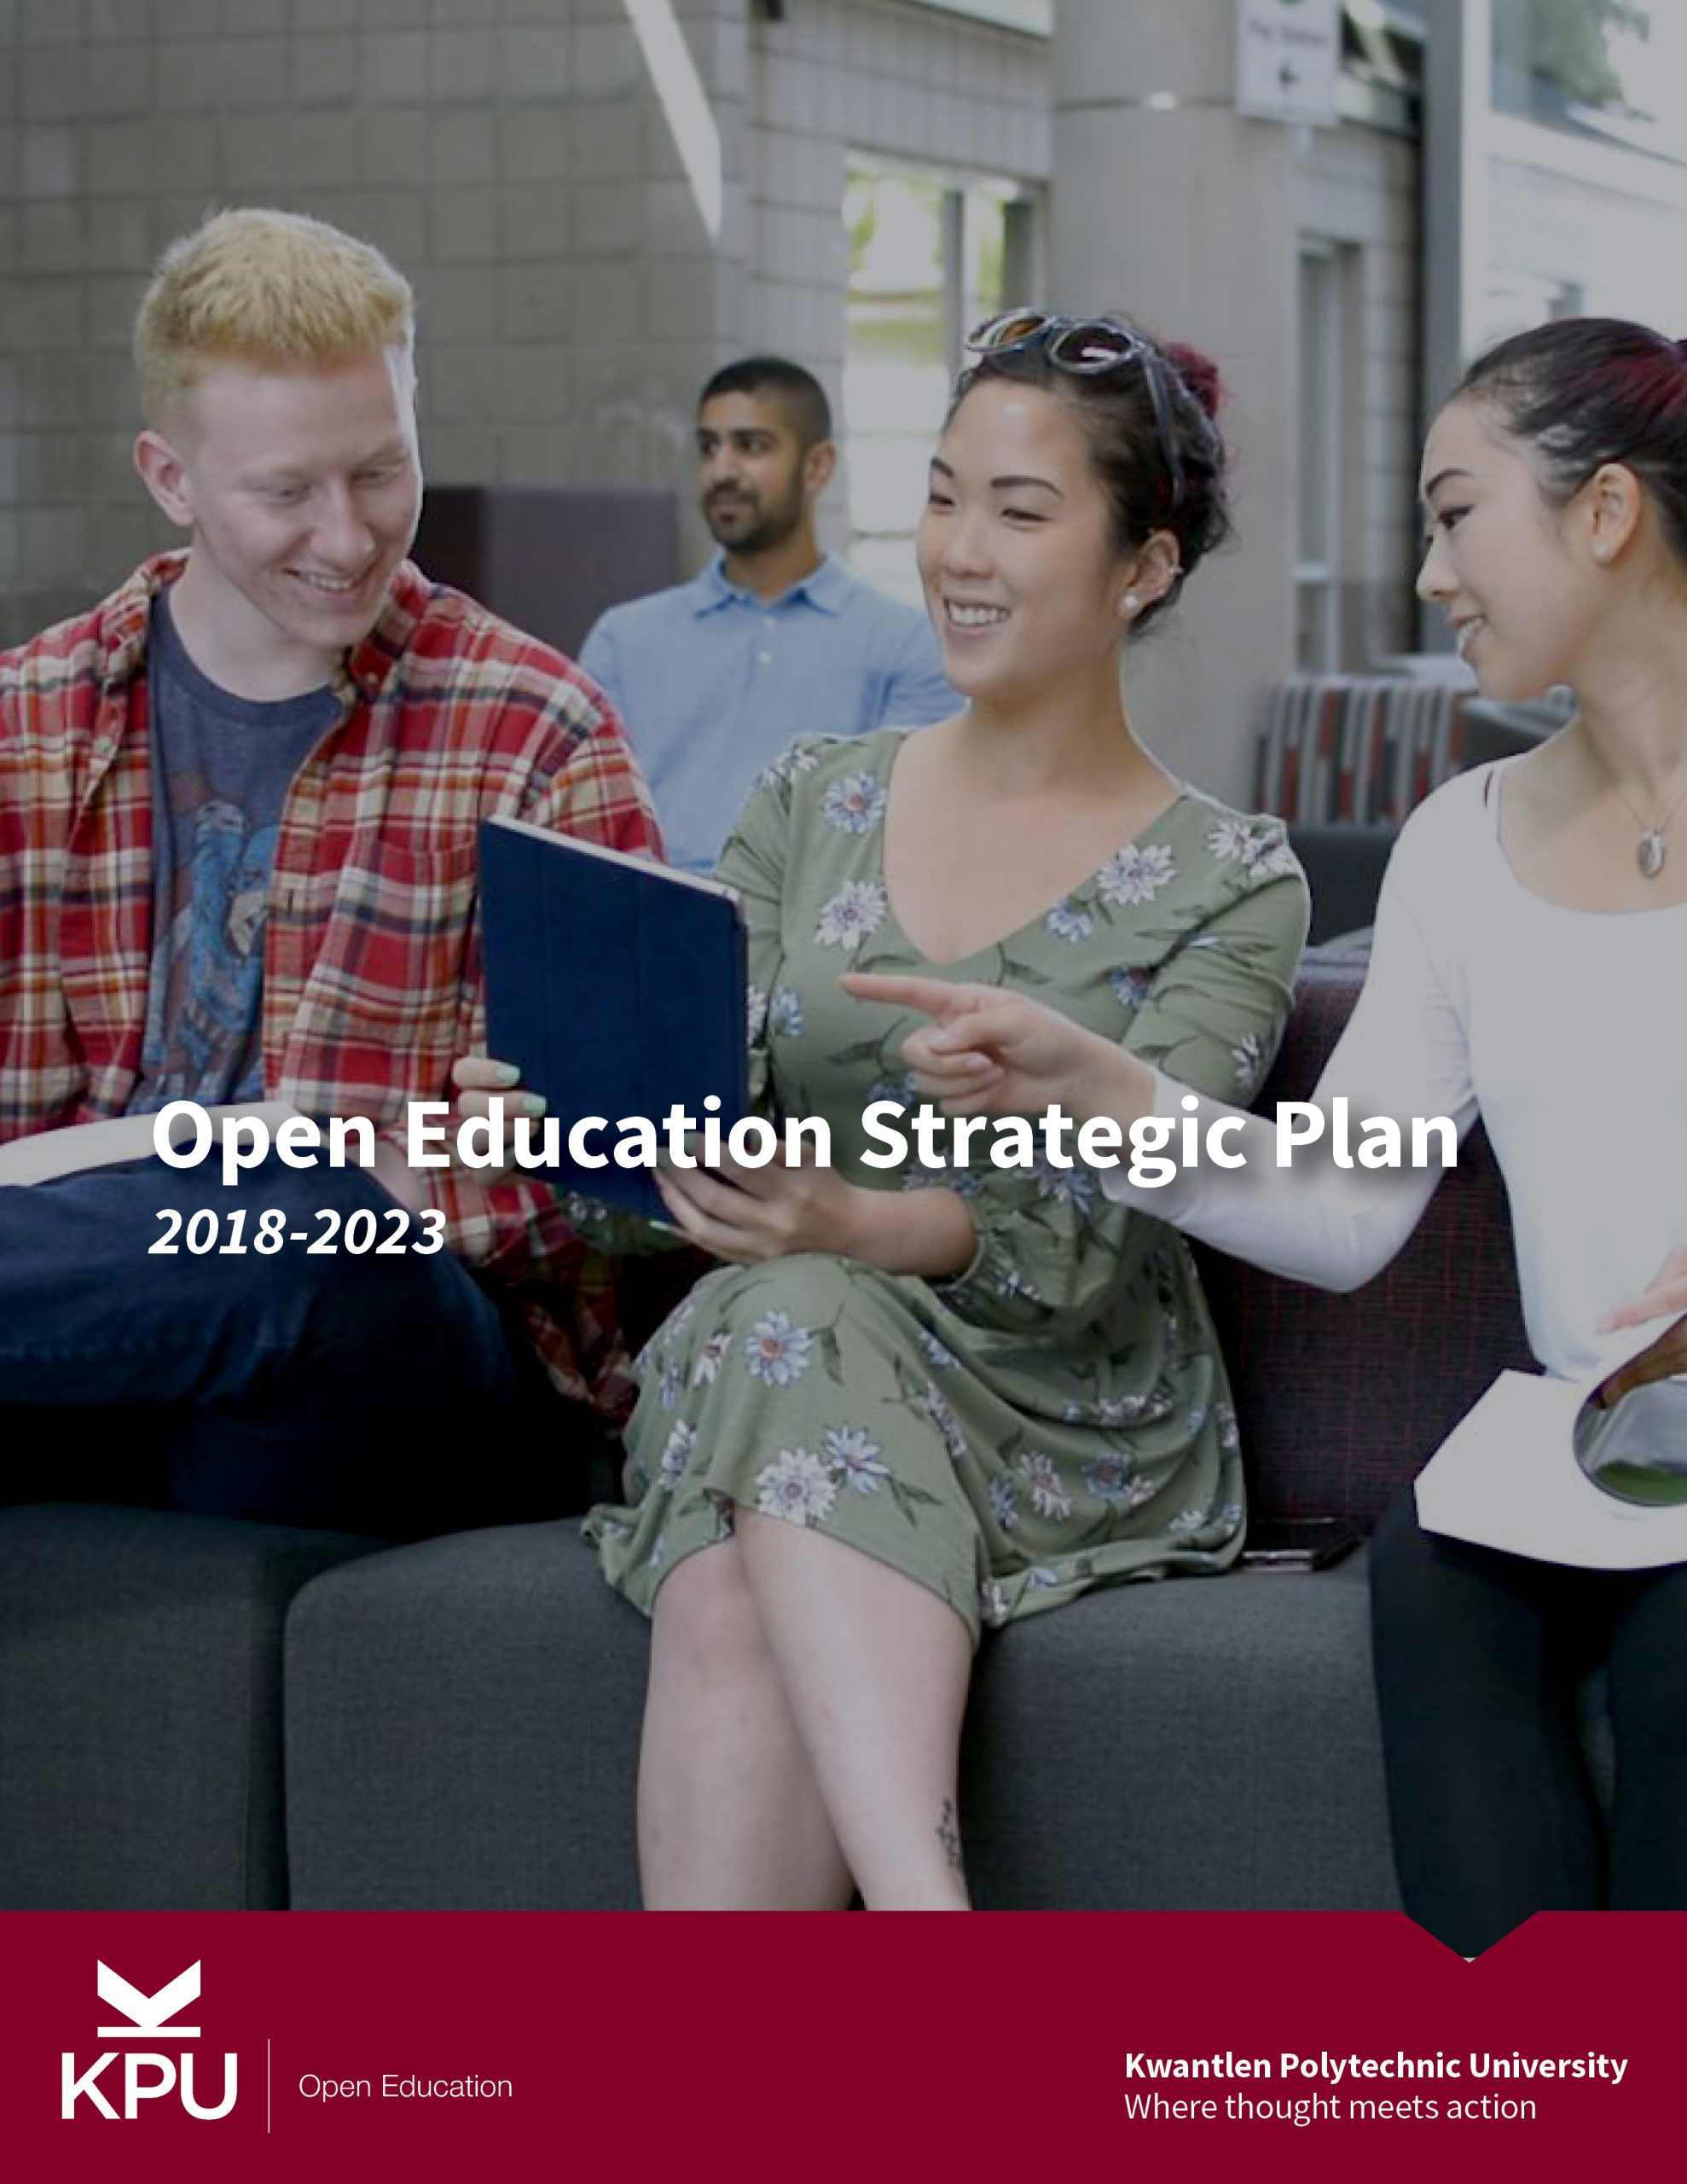 Cover image for Open Education Strategic Plan 2018-2023